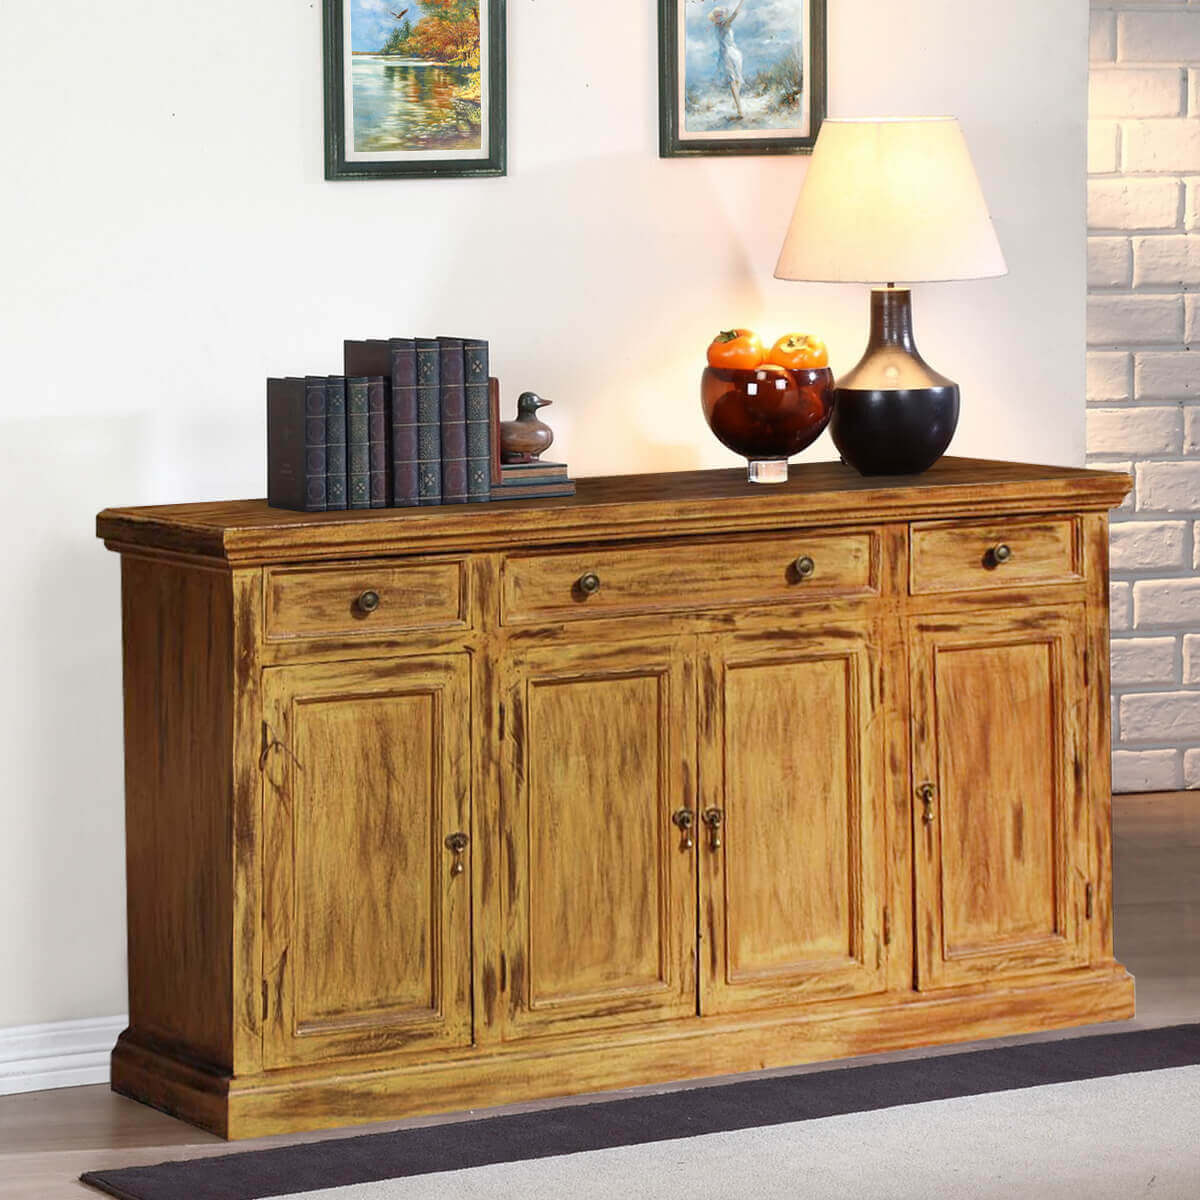 Side Board Courtdale Rustic Solid Wood 4 Door 3 Drawer Sideboard Cabinet